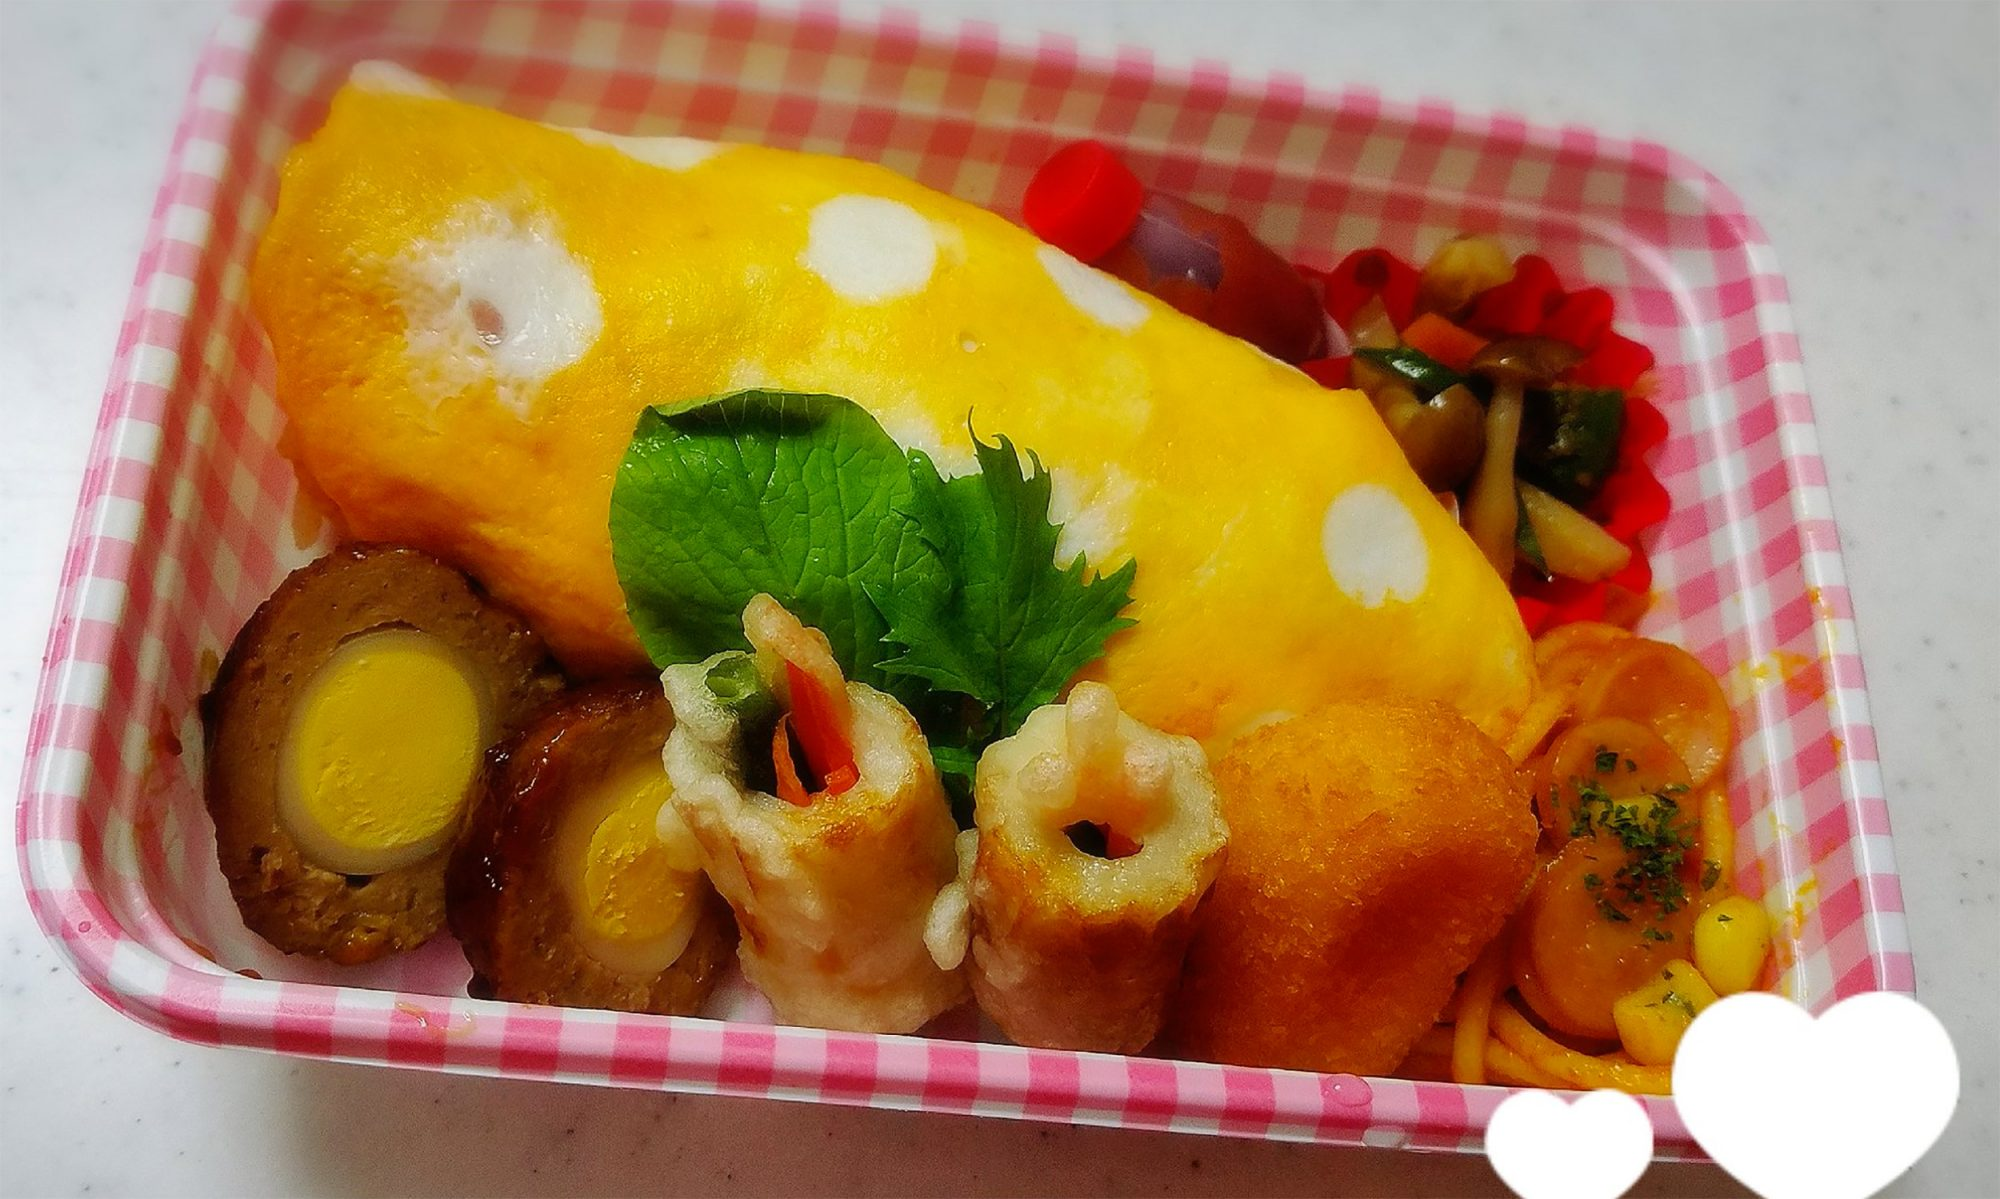 EC: Japanese Polka Dot Omelets Are the Cutest Way to Cook Eggs